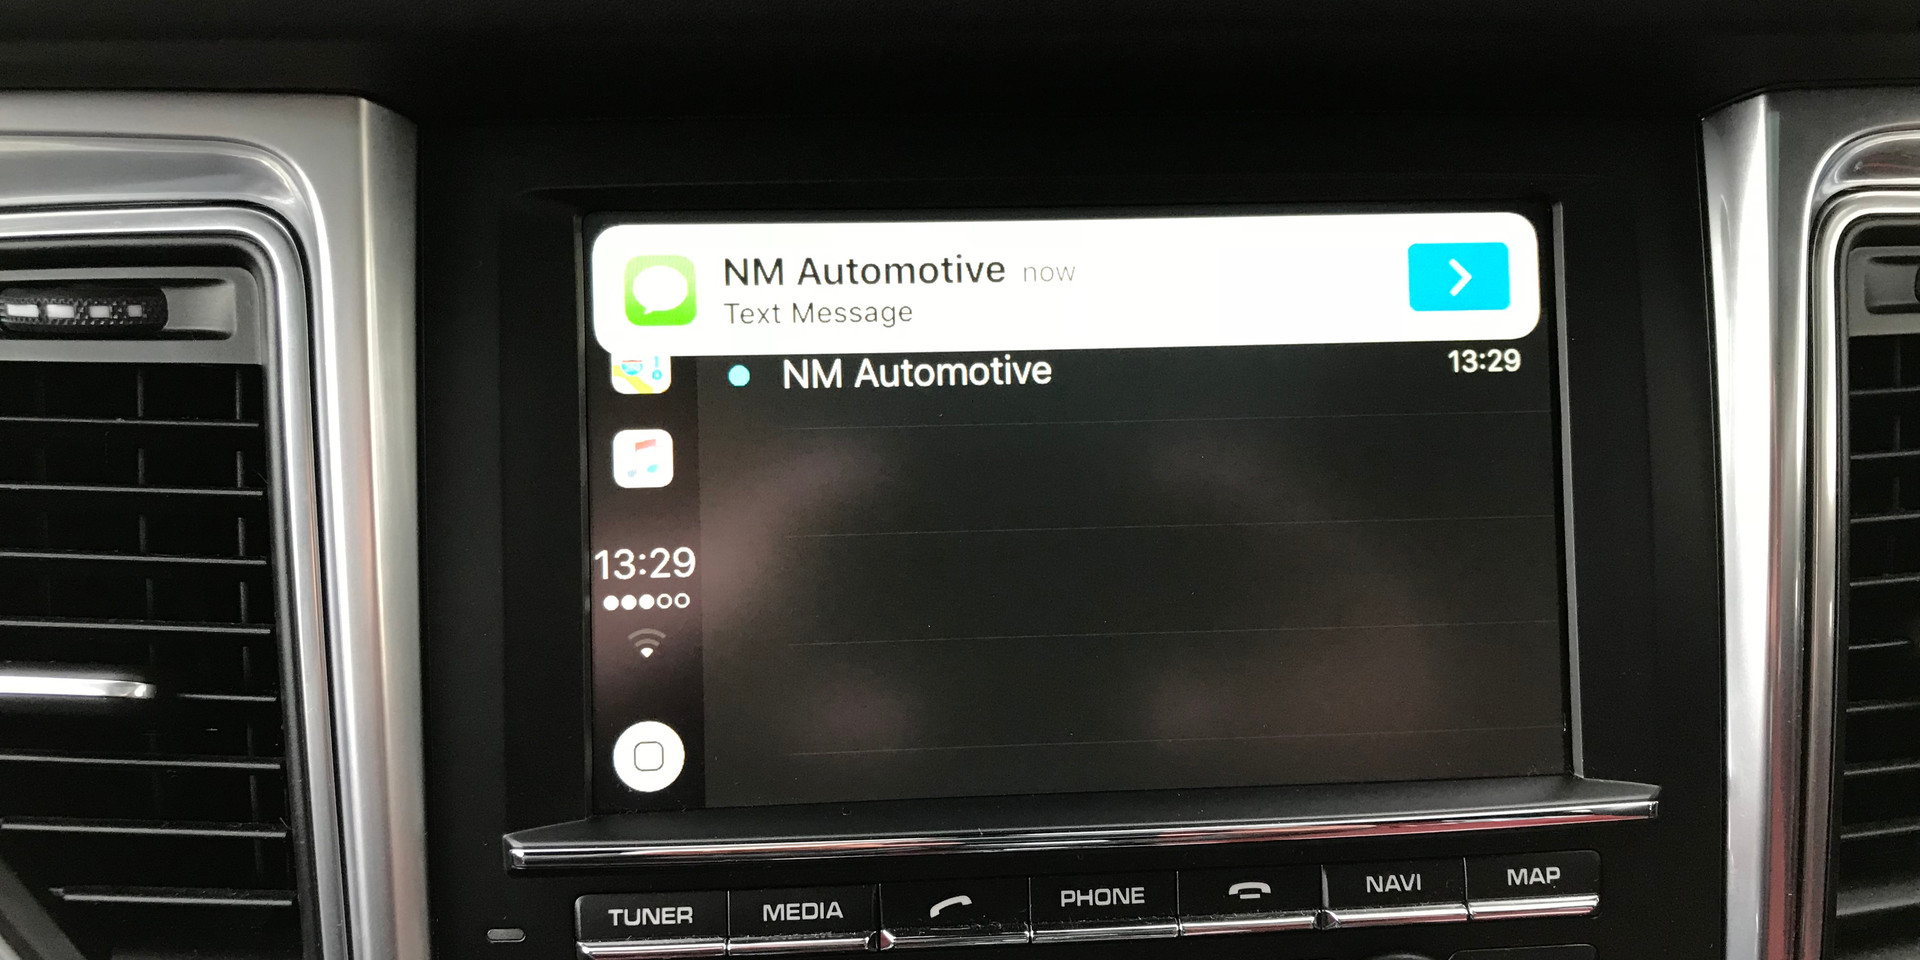 CarPlay Receiving Text